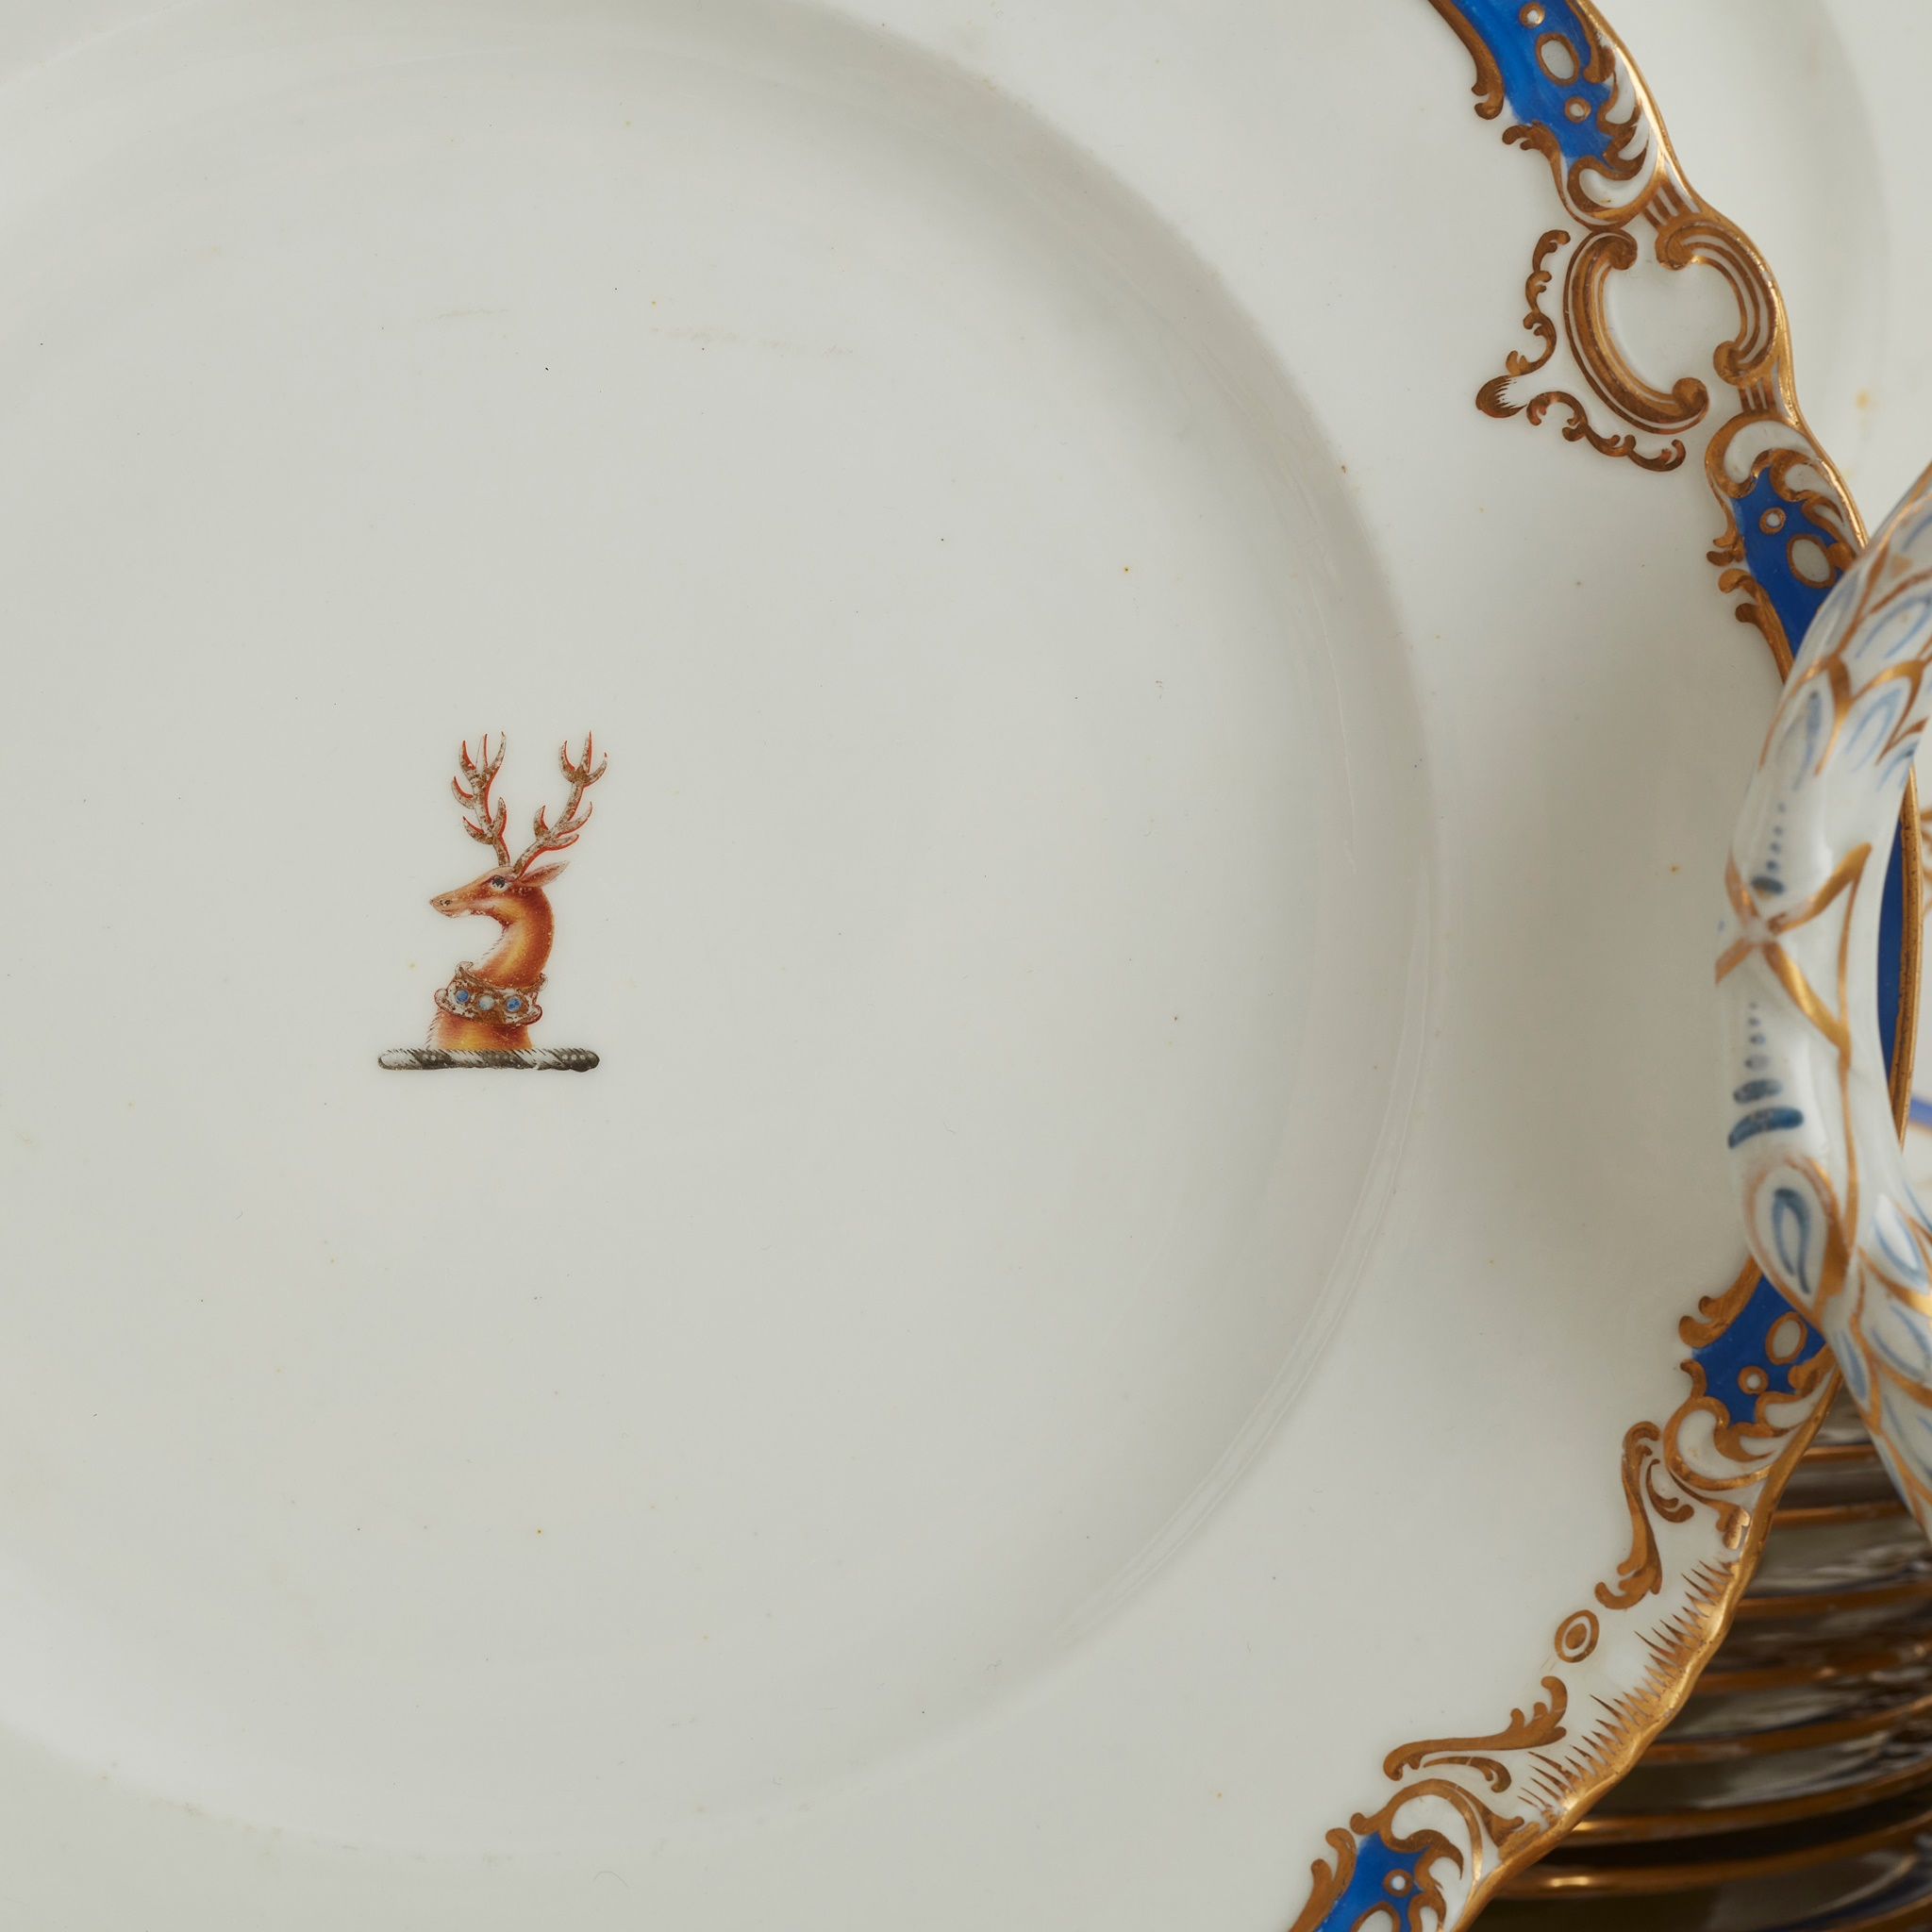 EXTENSIVE ENGLISH PORCELAIN PART DINNER SERVICE, BEARING THE FAMILY CREST FOR LLOYD EARLY 19TH - Image 2 of 2